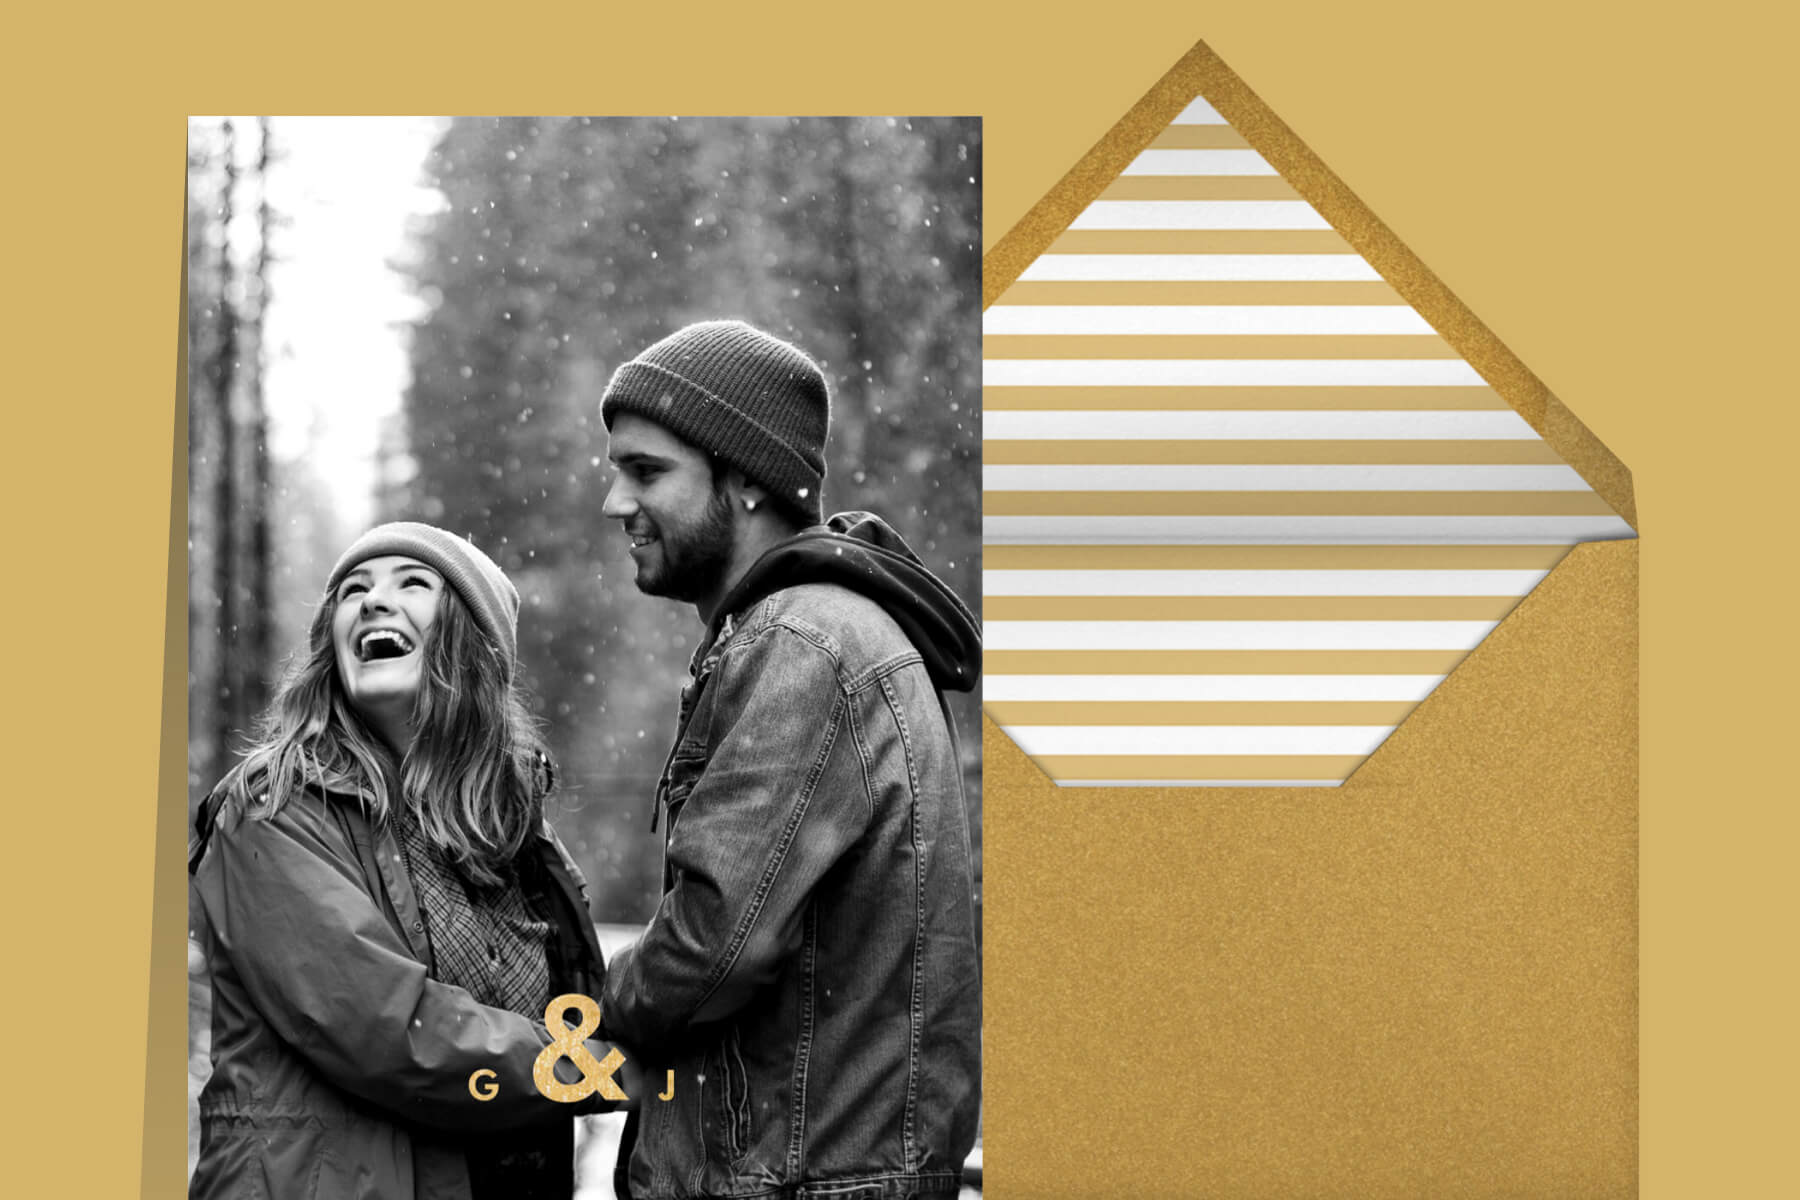 photo engagement party invitation